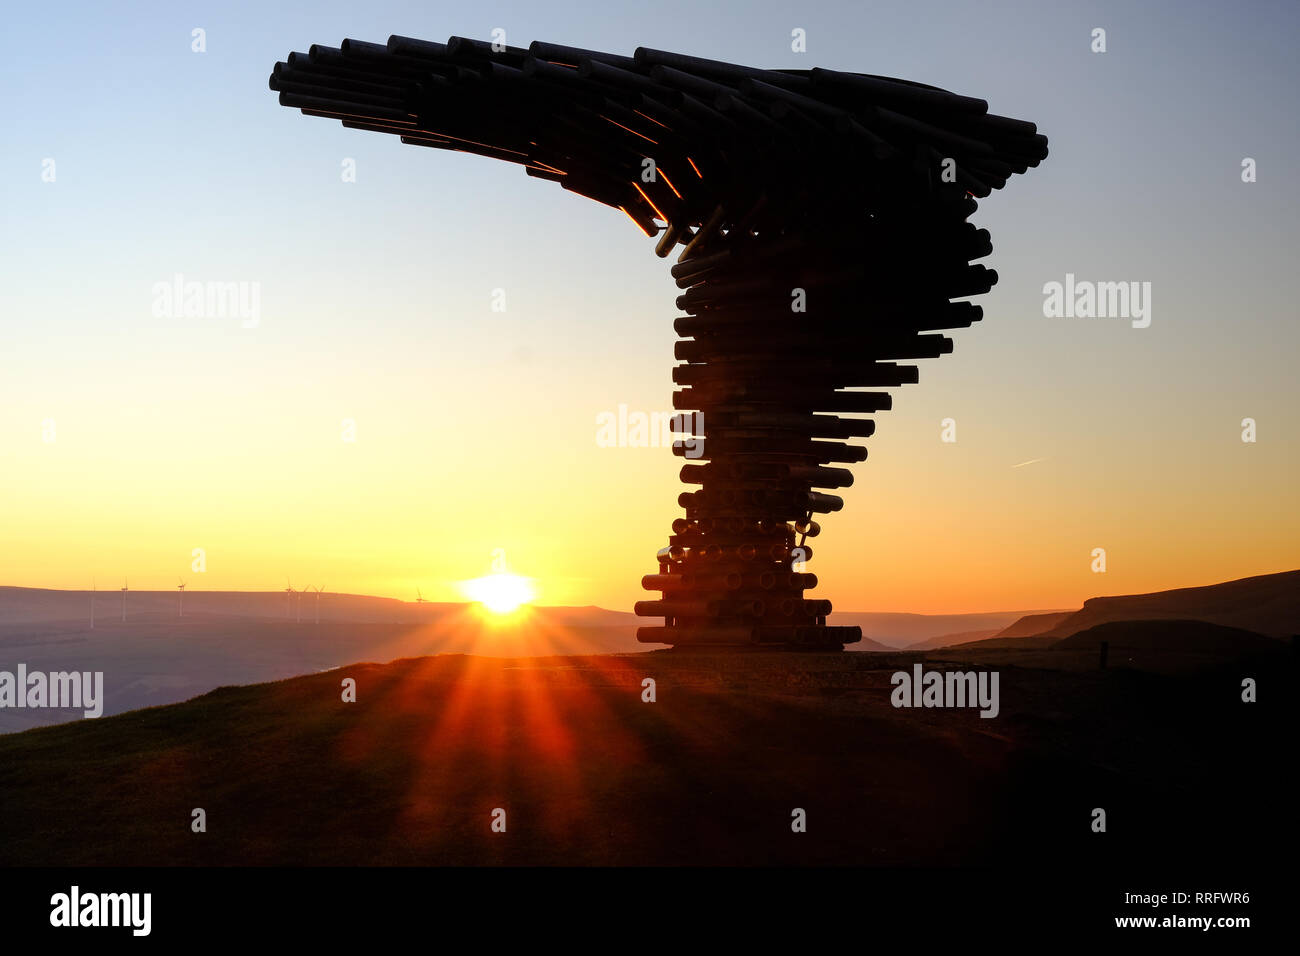 Burnley, UK. 26th February 2019. UK Weather. There was a stunning sunrise at The Singing Ringing Tree near Burley in Lancashire as the fine February weather continued. The Singing Ringing Tree is a wind powered sound sculpture resembling a tree set in the landscape of the Pennine hill range overlooking Burnley, in Lancashire. Burnley's Panopticon, 'Singing Ringing Tree', is a unique musical sculpture which overlooks Burnley from its position high above the town on Crown Point. Credit: Paul Melling/Alamy Live News - Stock Image